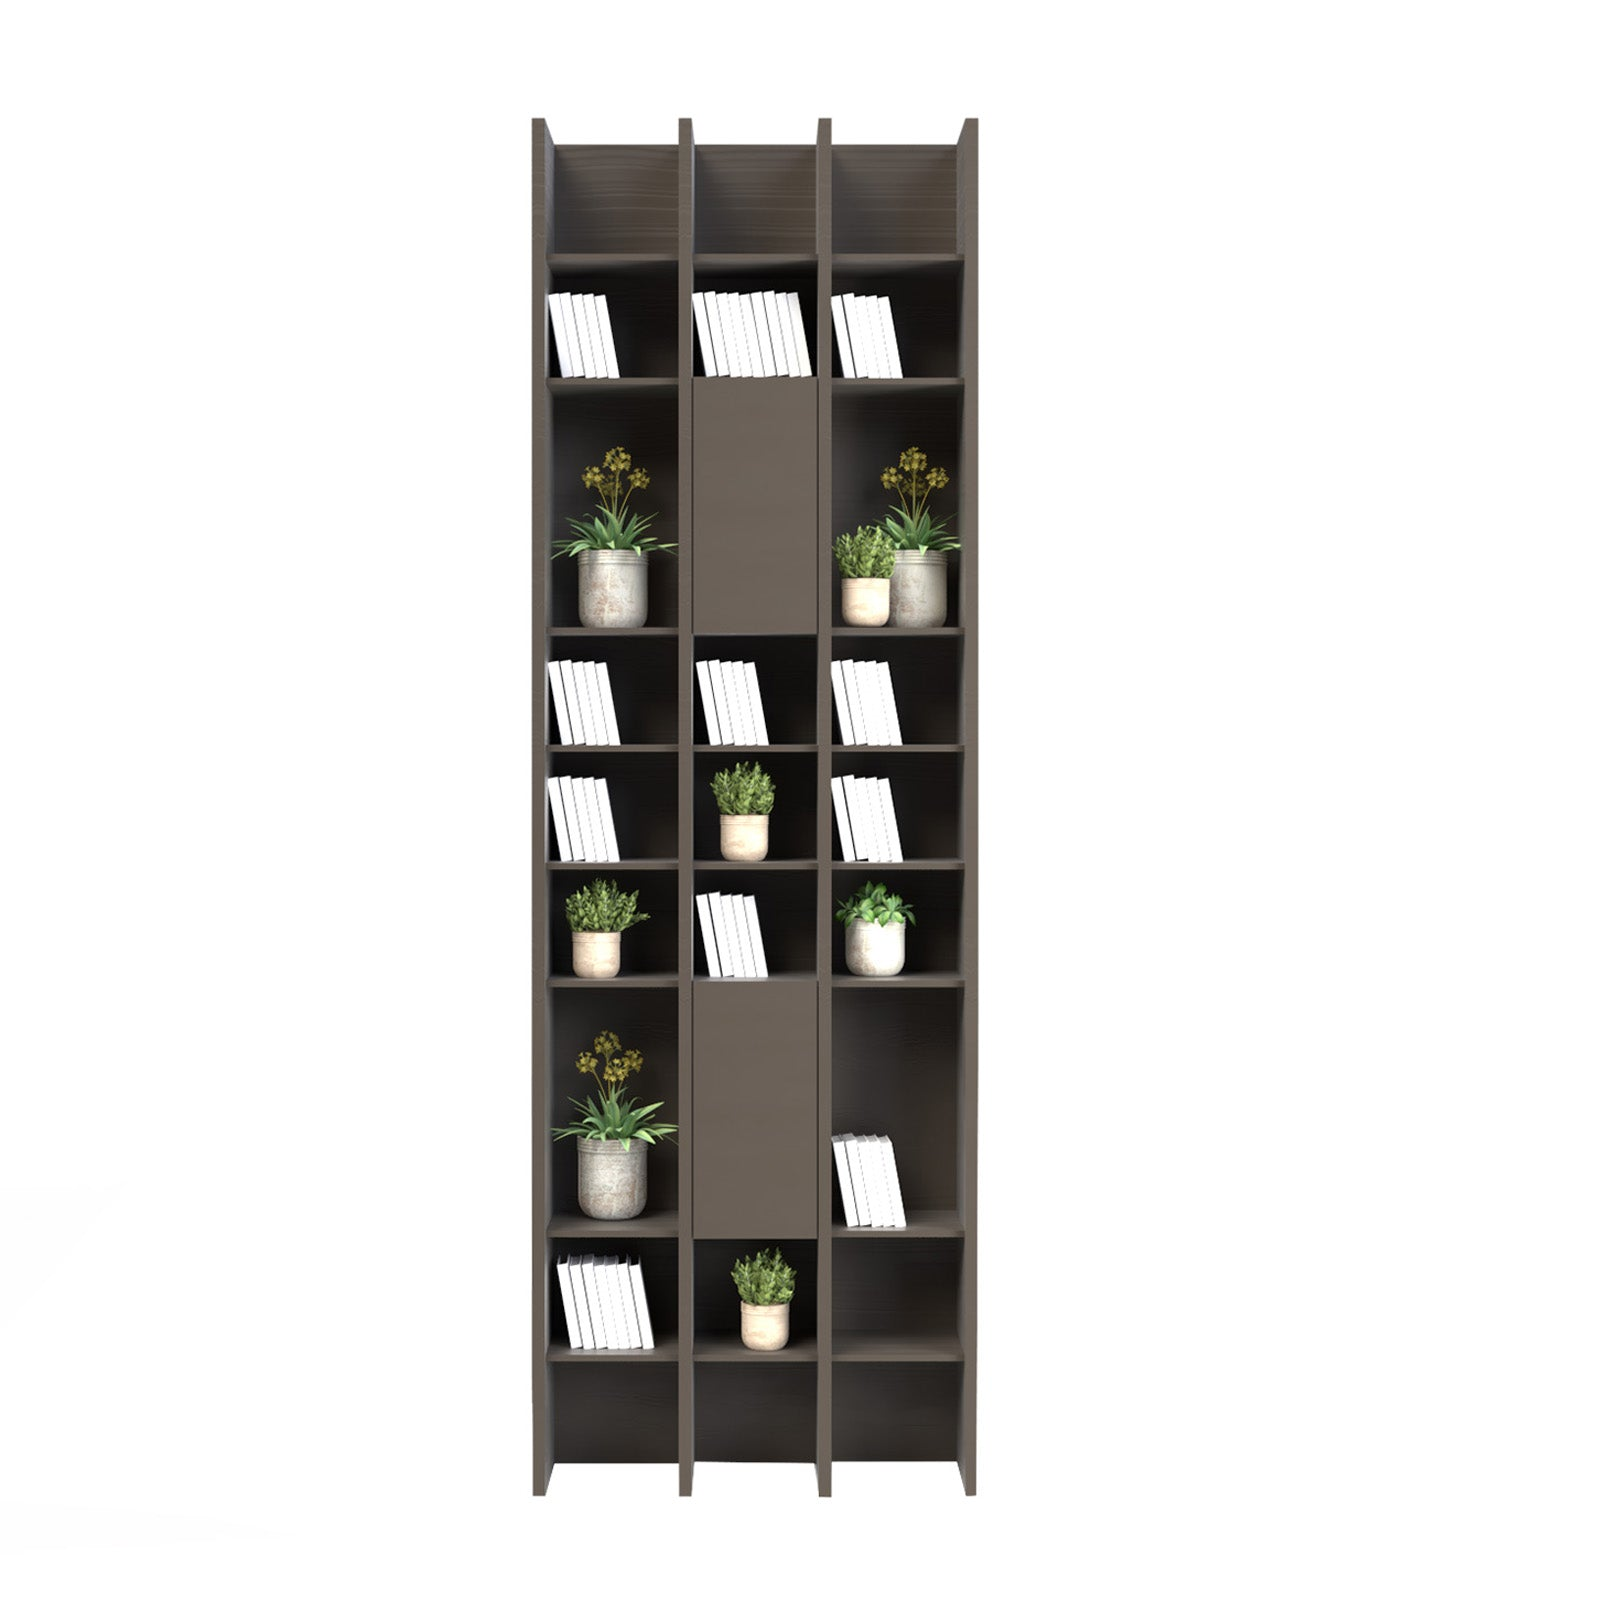 Siena wall shelving unit SEINA-S90